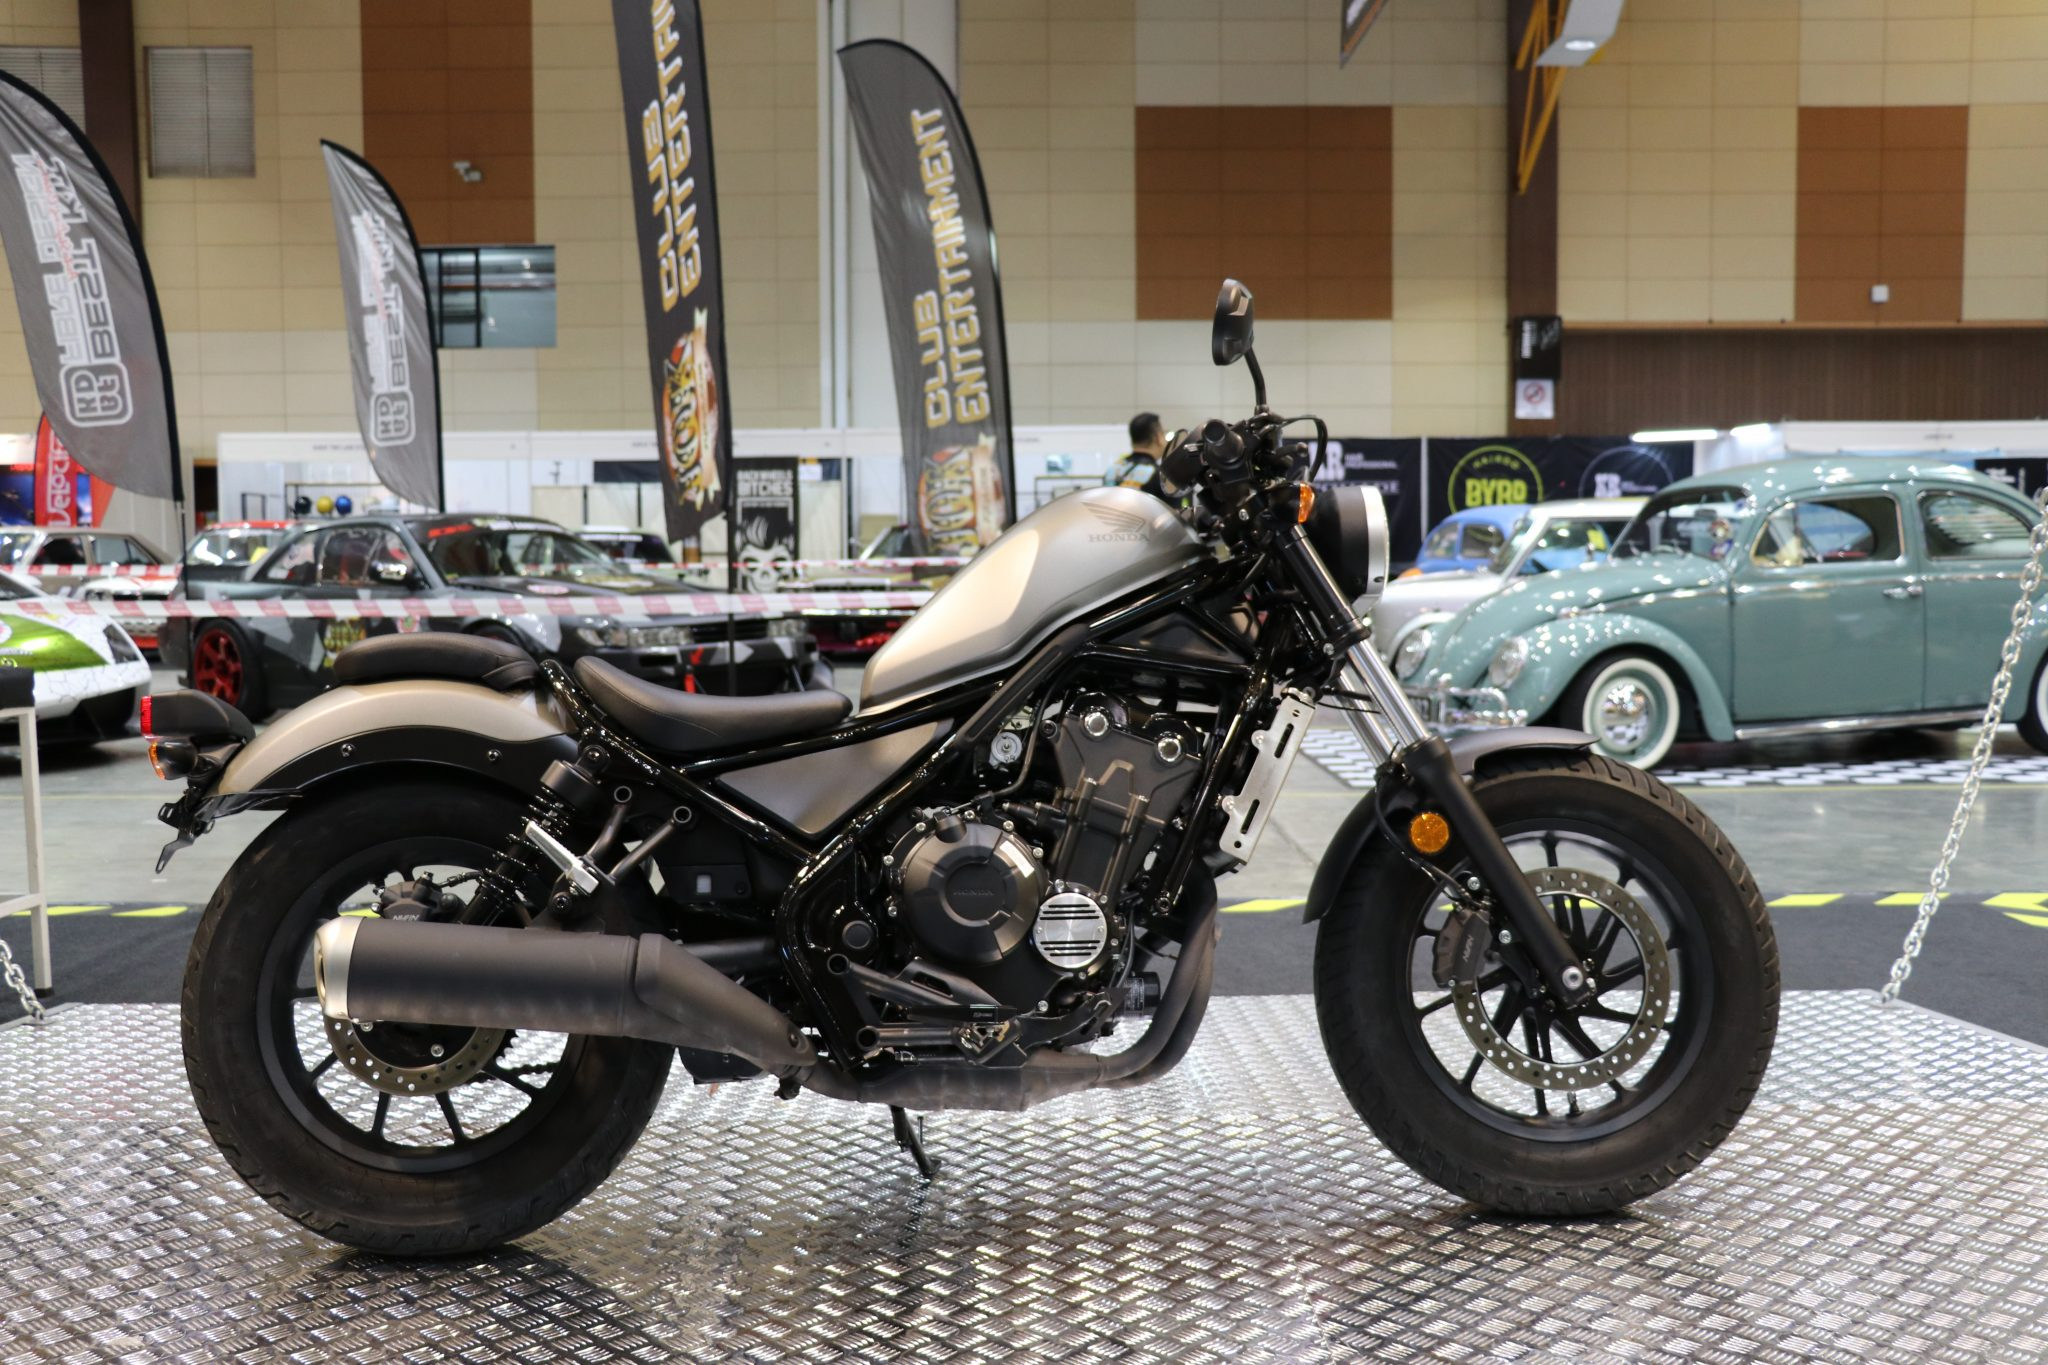 Boon Siew Honda to launch Honda Rebel by end of August 2017